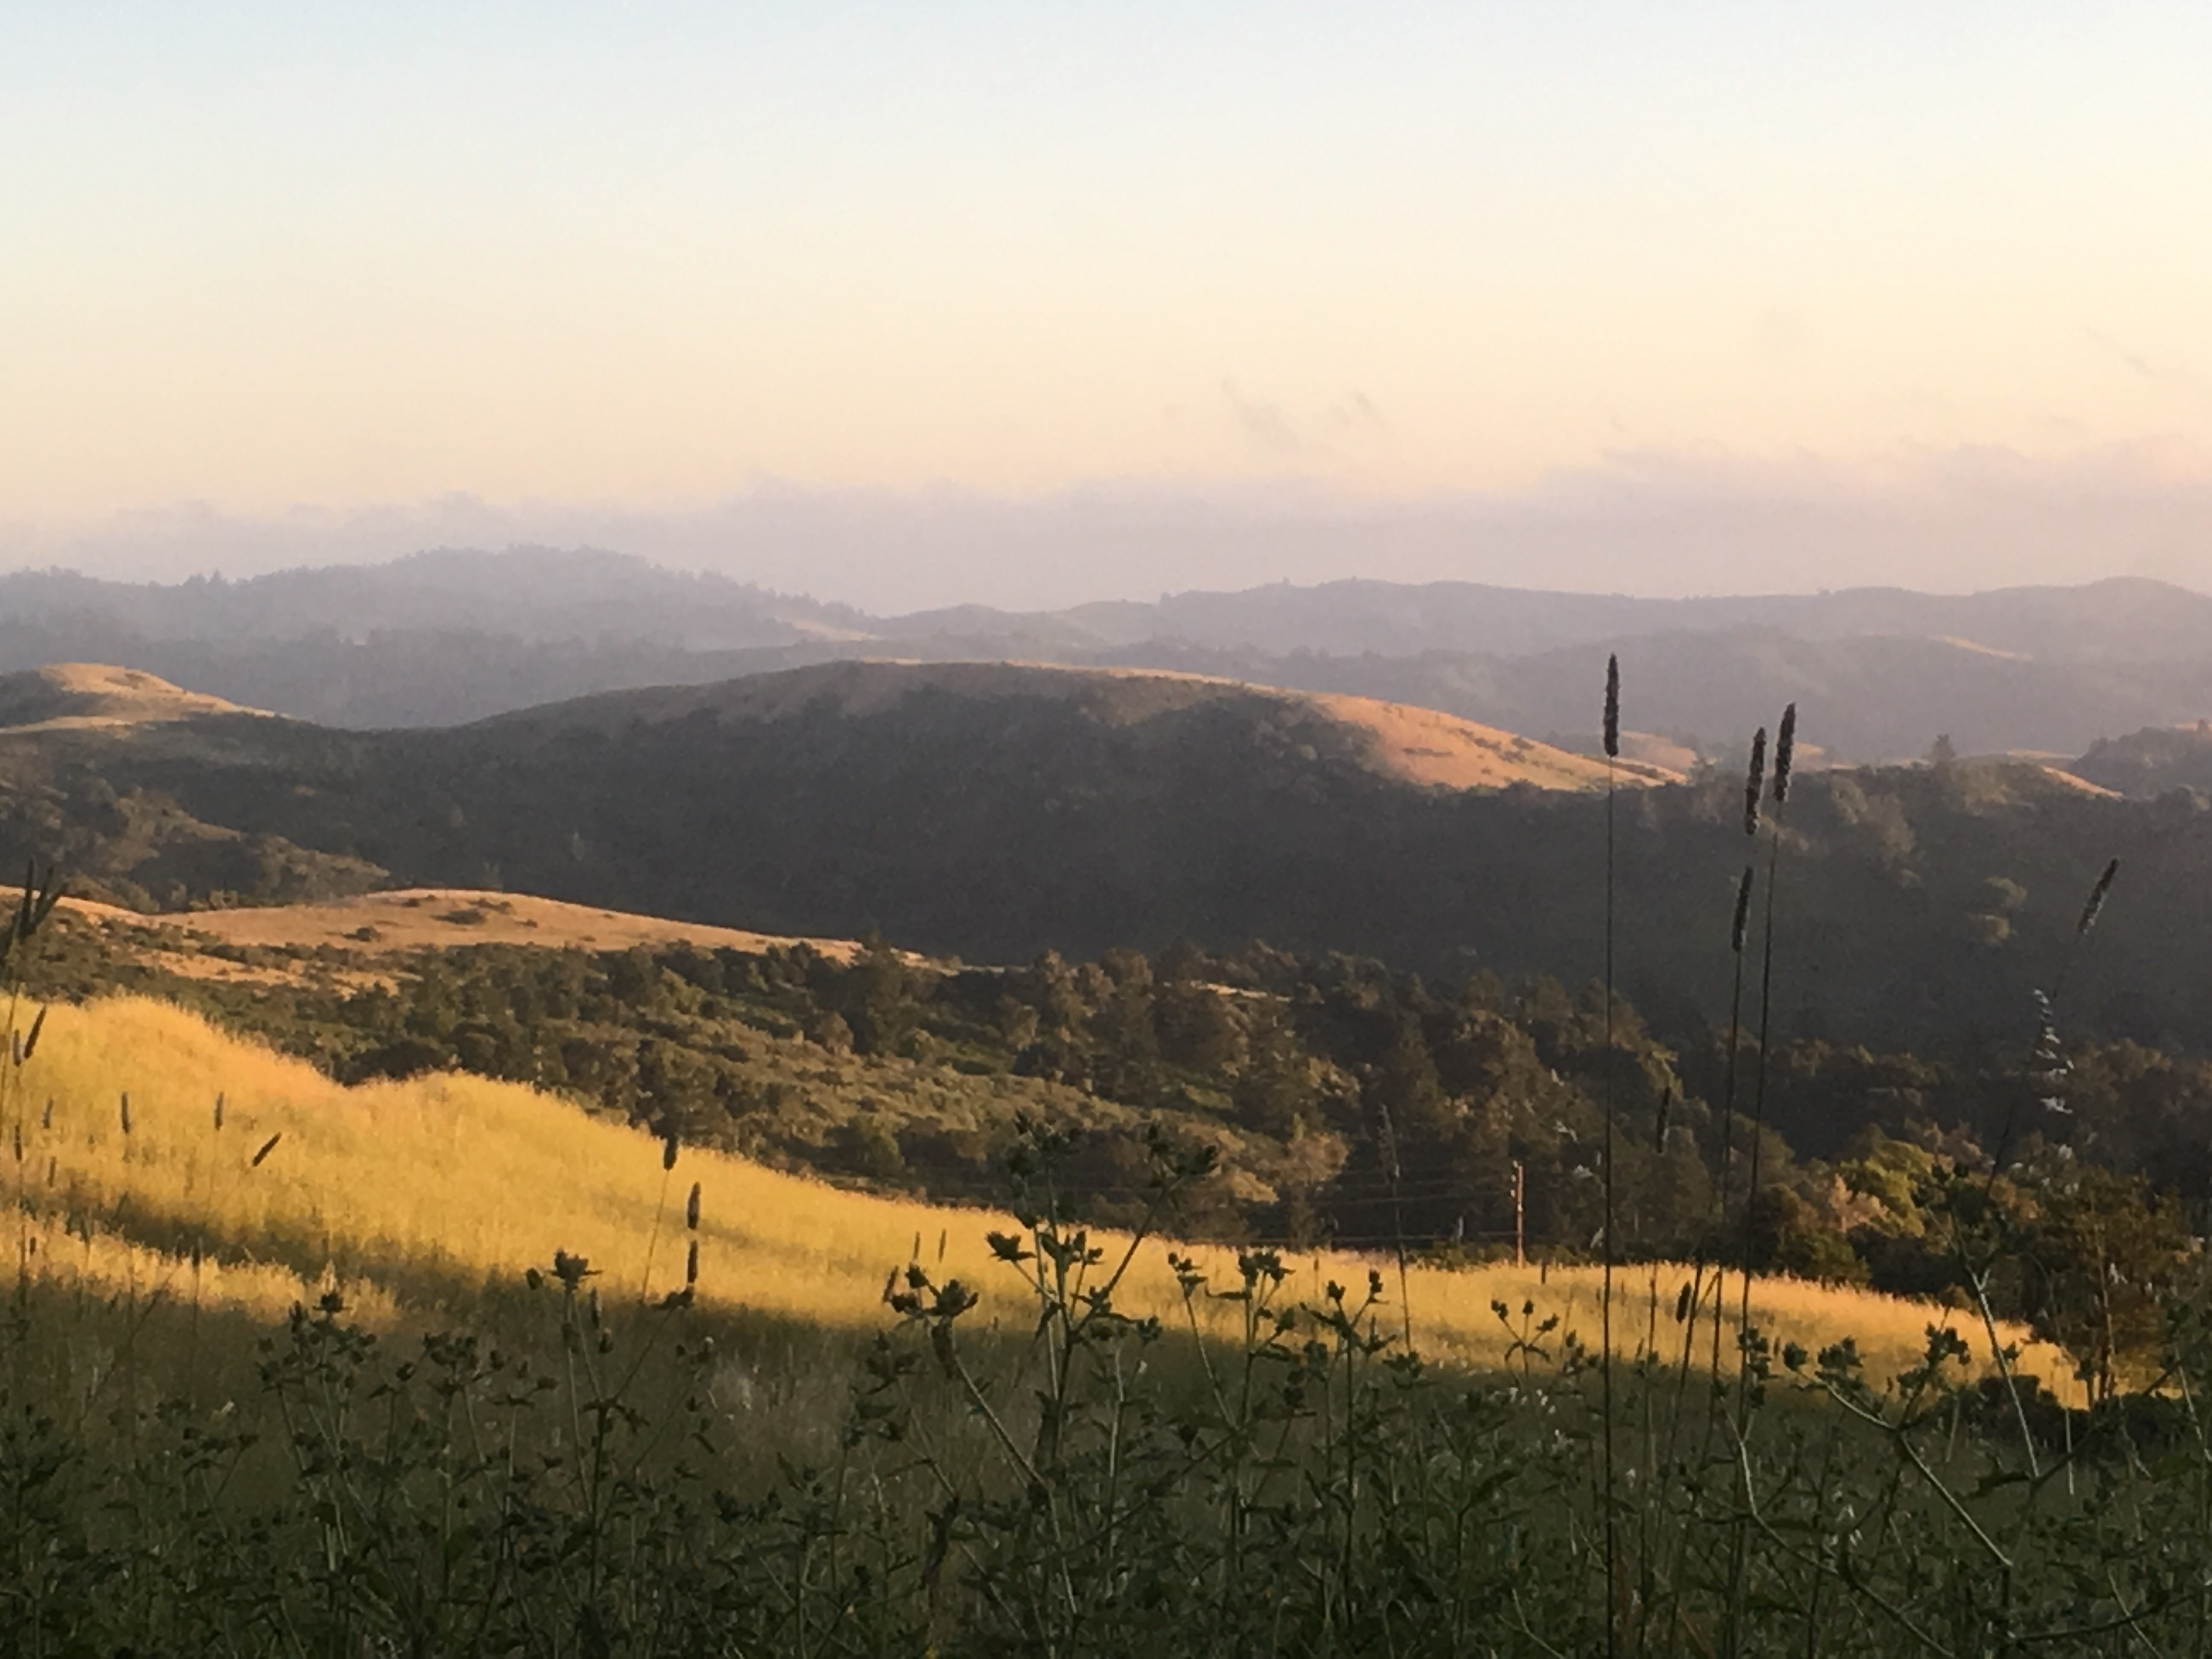 Djerassi landscape photo from hillside - late afternoon sun